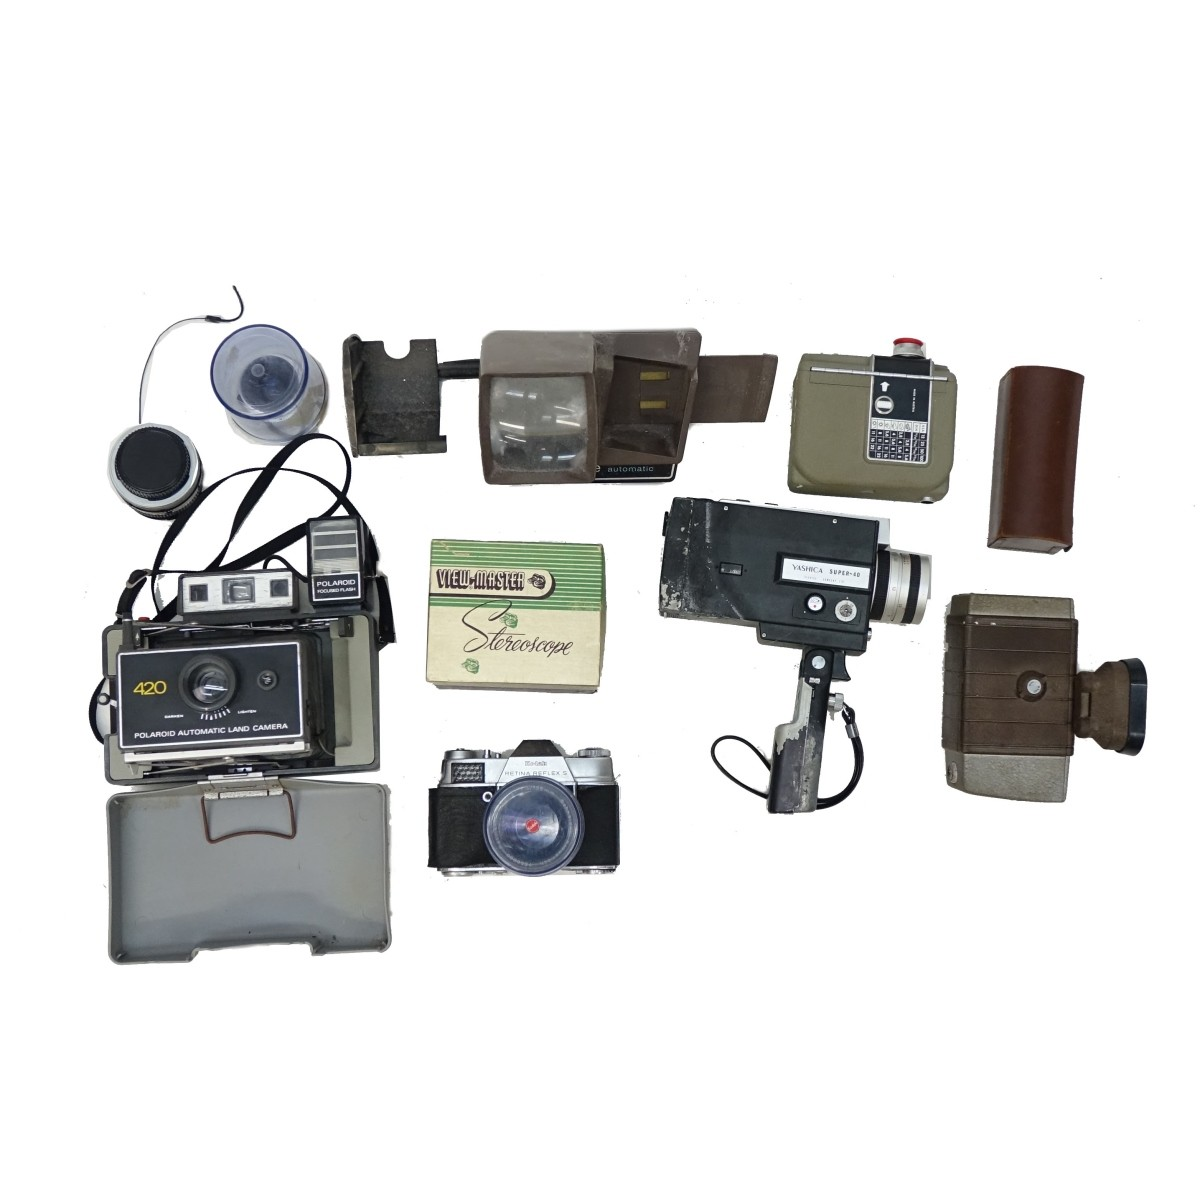 Assorted Cameras, Lenses, and Equipment.